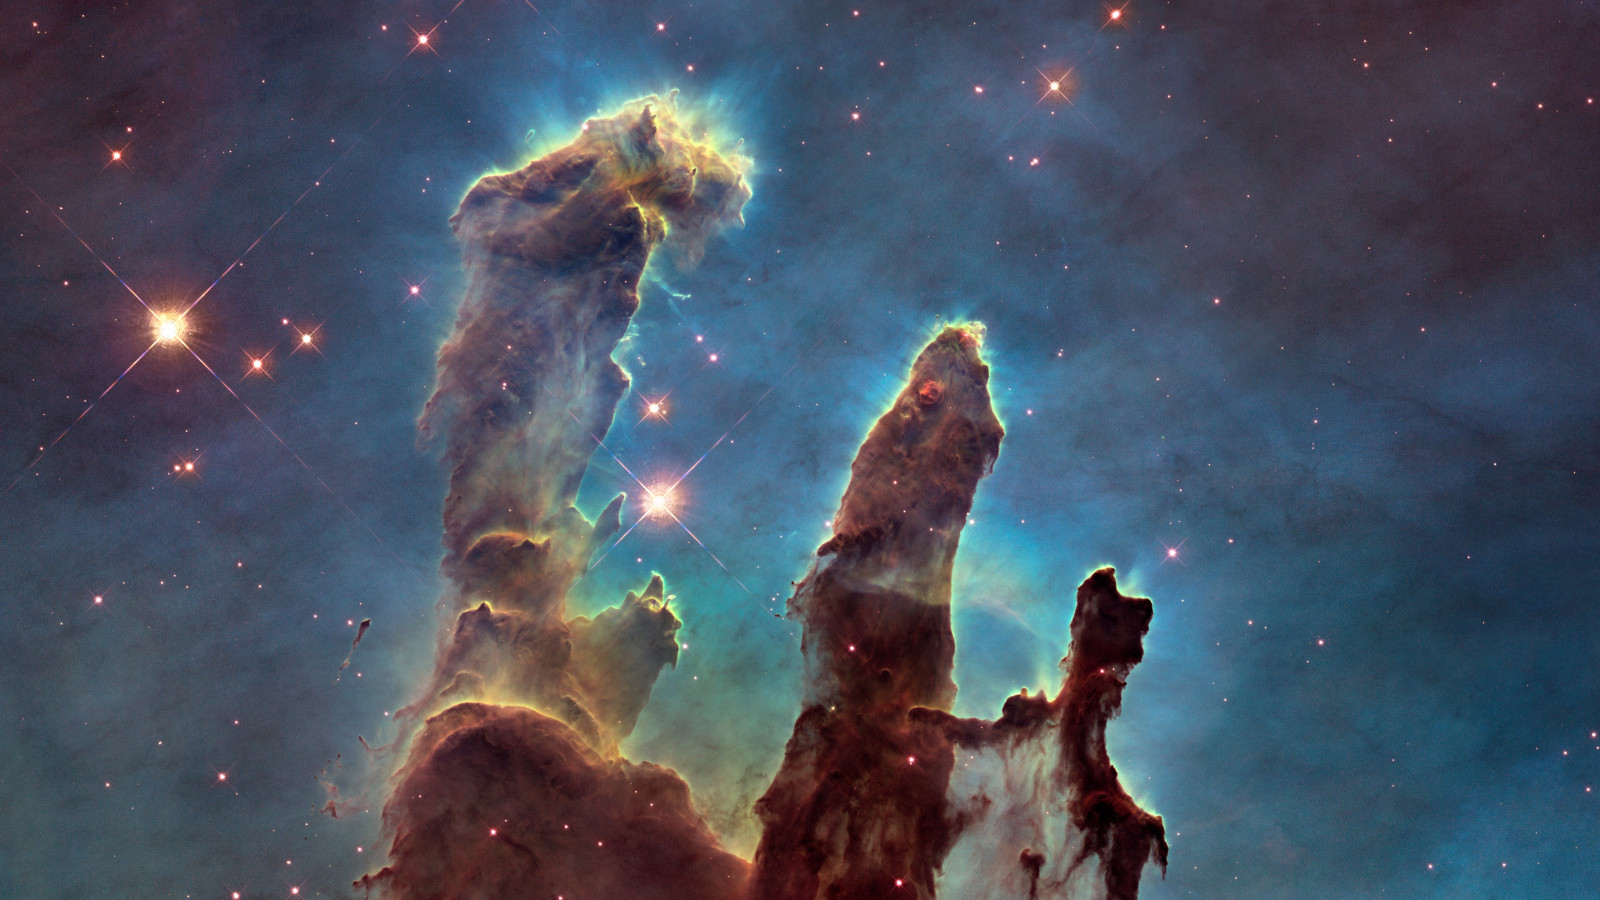 The Eagle Nebula's Pillars of Creation wallpaper 1600x900